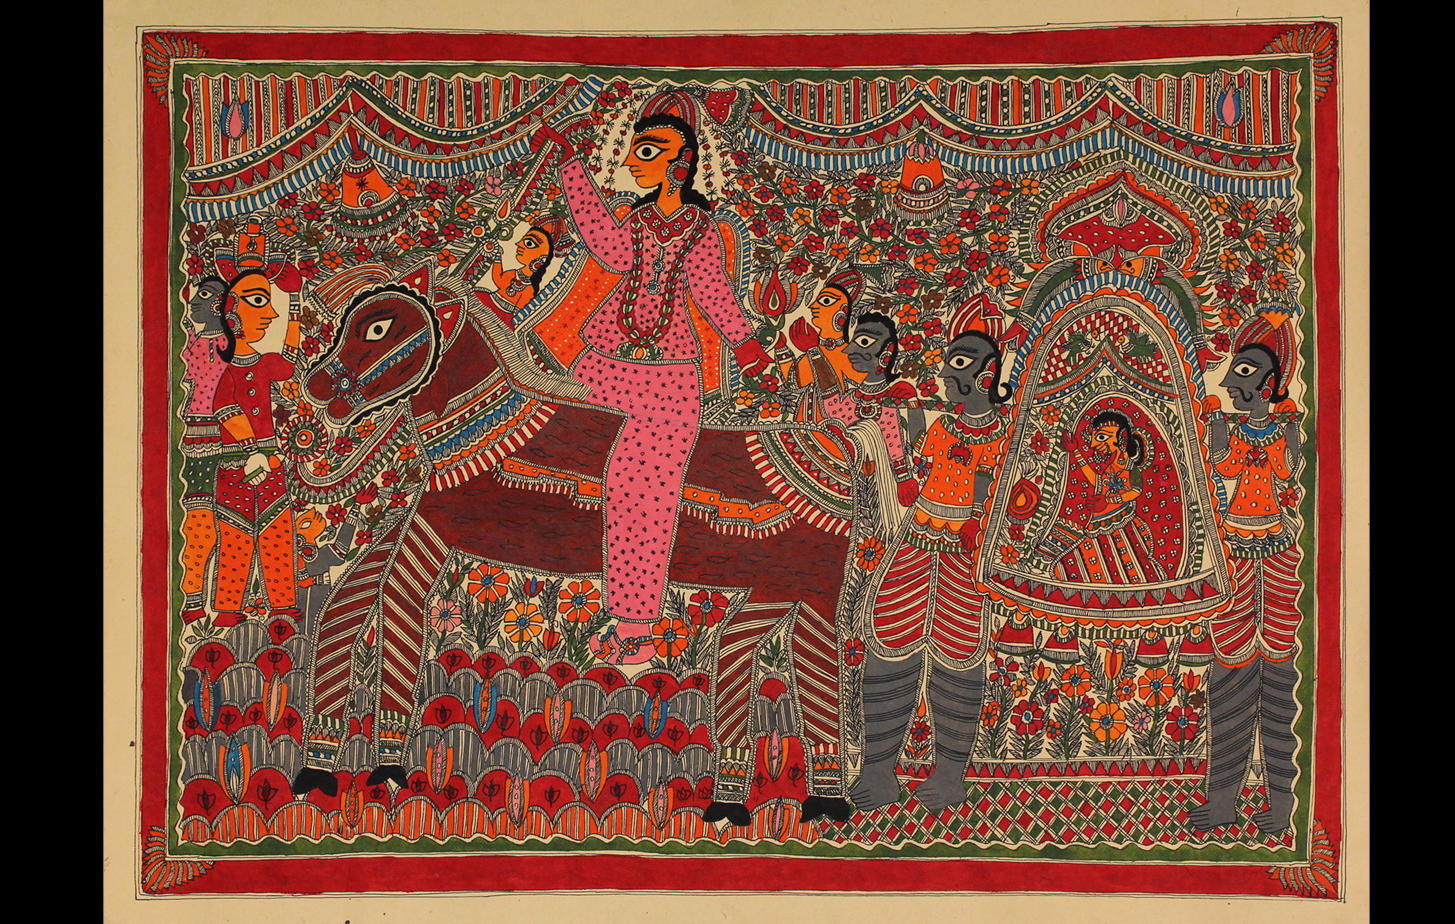 Mithila painting depicting a wedding procession with the groom on a horse and the bride in a palanquin.